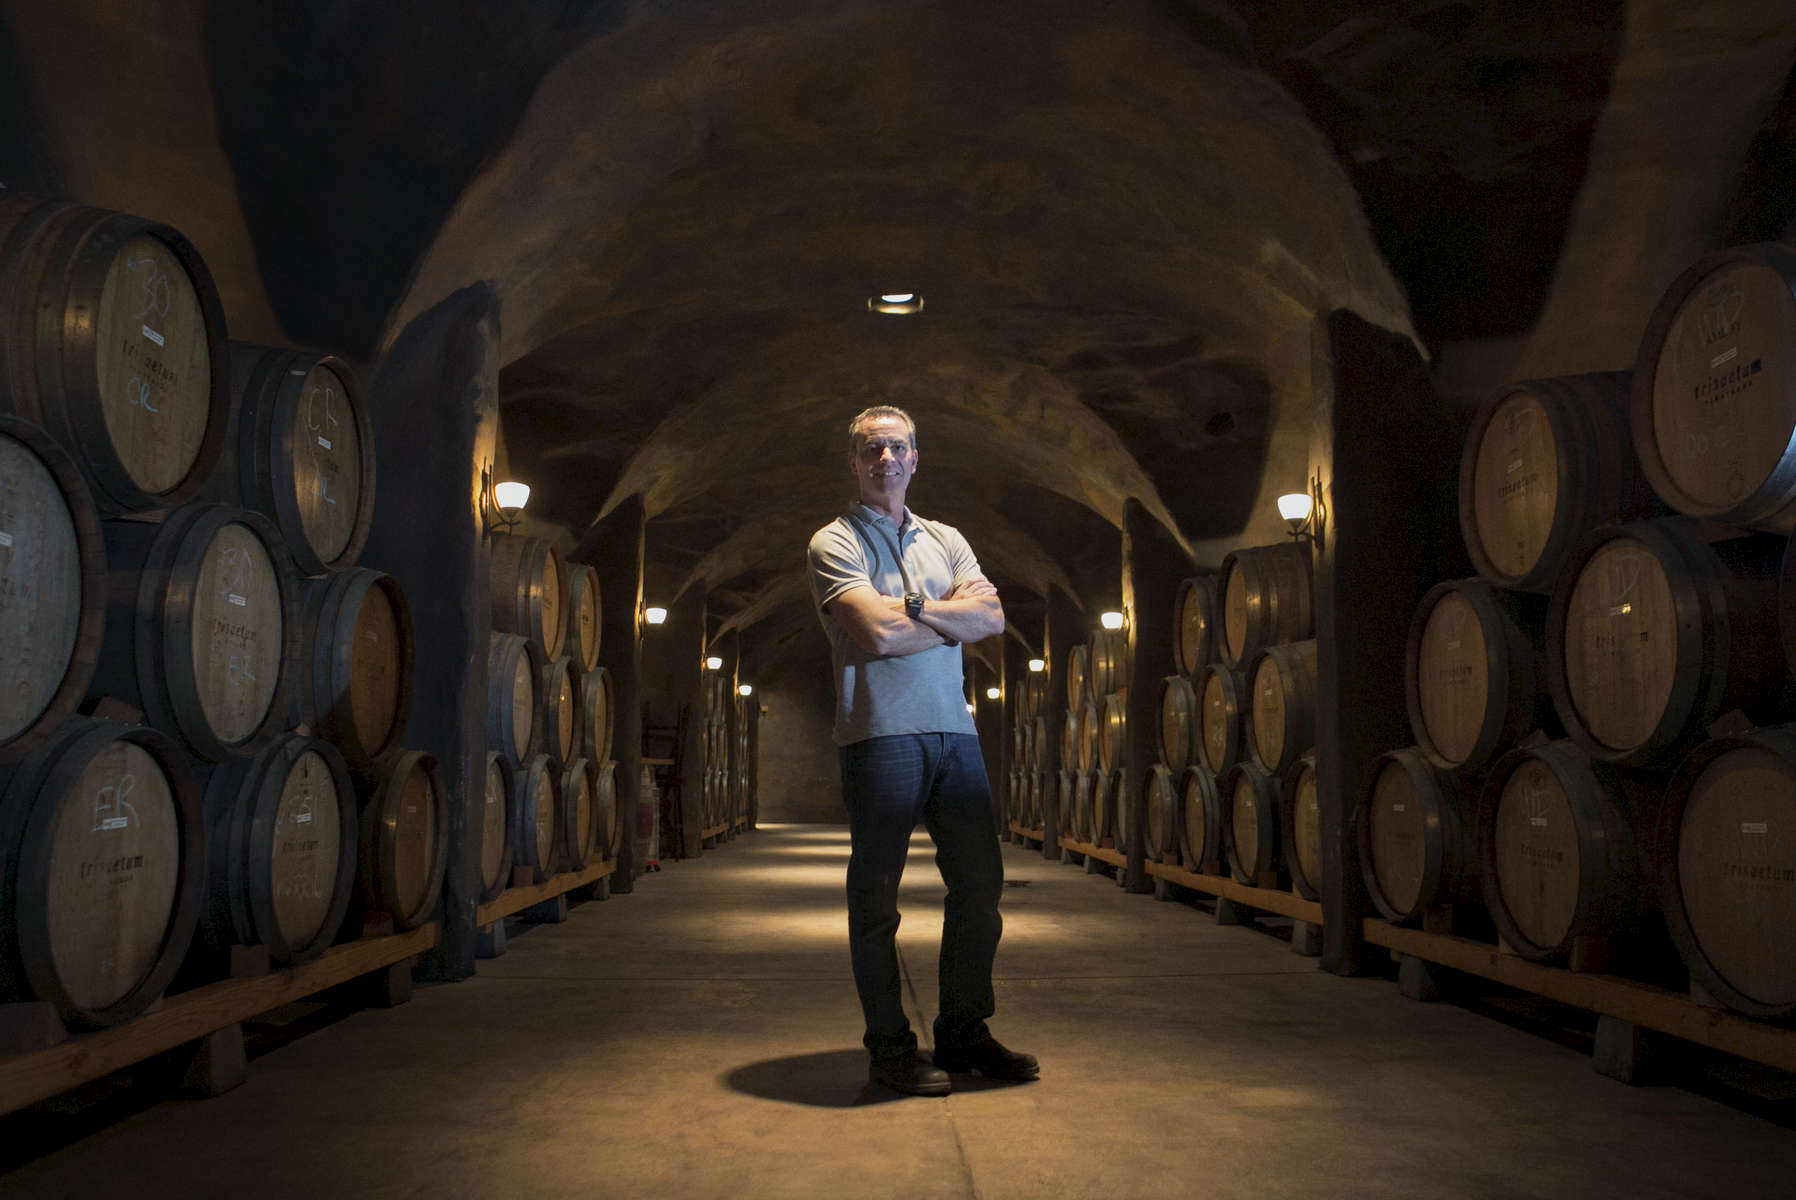 James Frey, winemaker and owner of Trisaetum Winery, Vineyards & Gallery in Newburg, Oregon, in the winery's barrel cave.